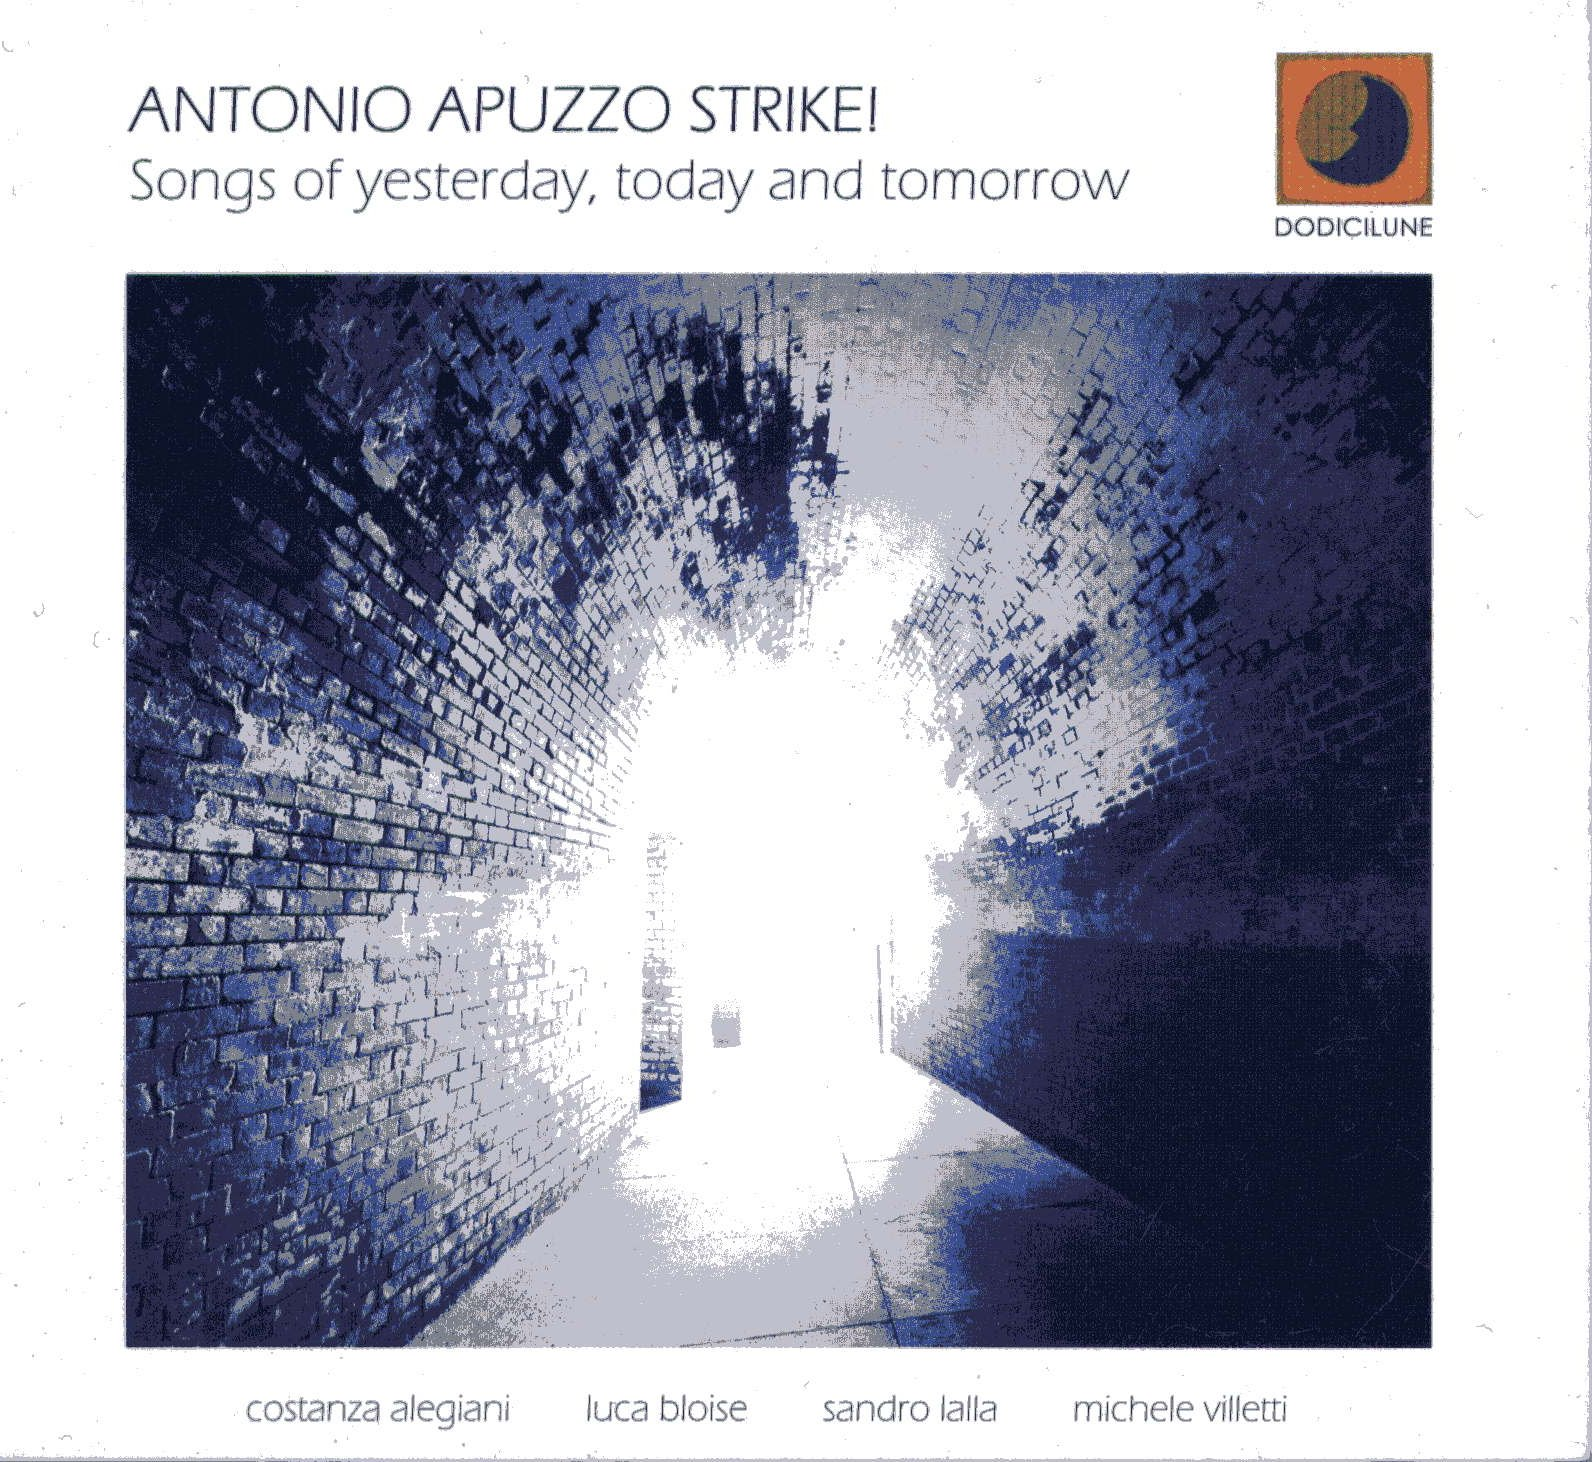 Antonio Apuzzo Strike</br>Songs Of Yesterday, Today And Tomorrow</br>Dodicilune, 2016